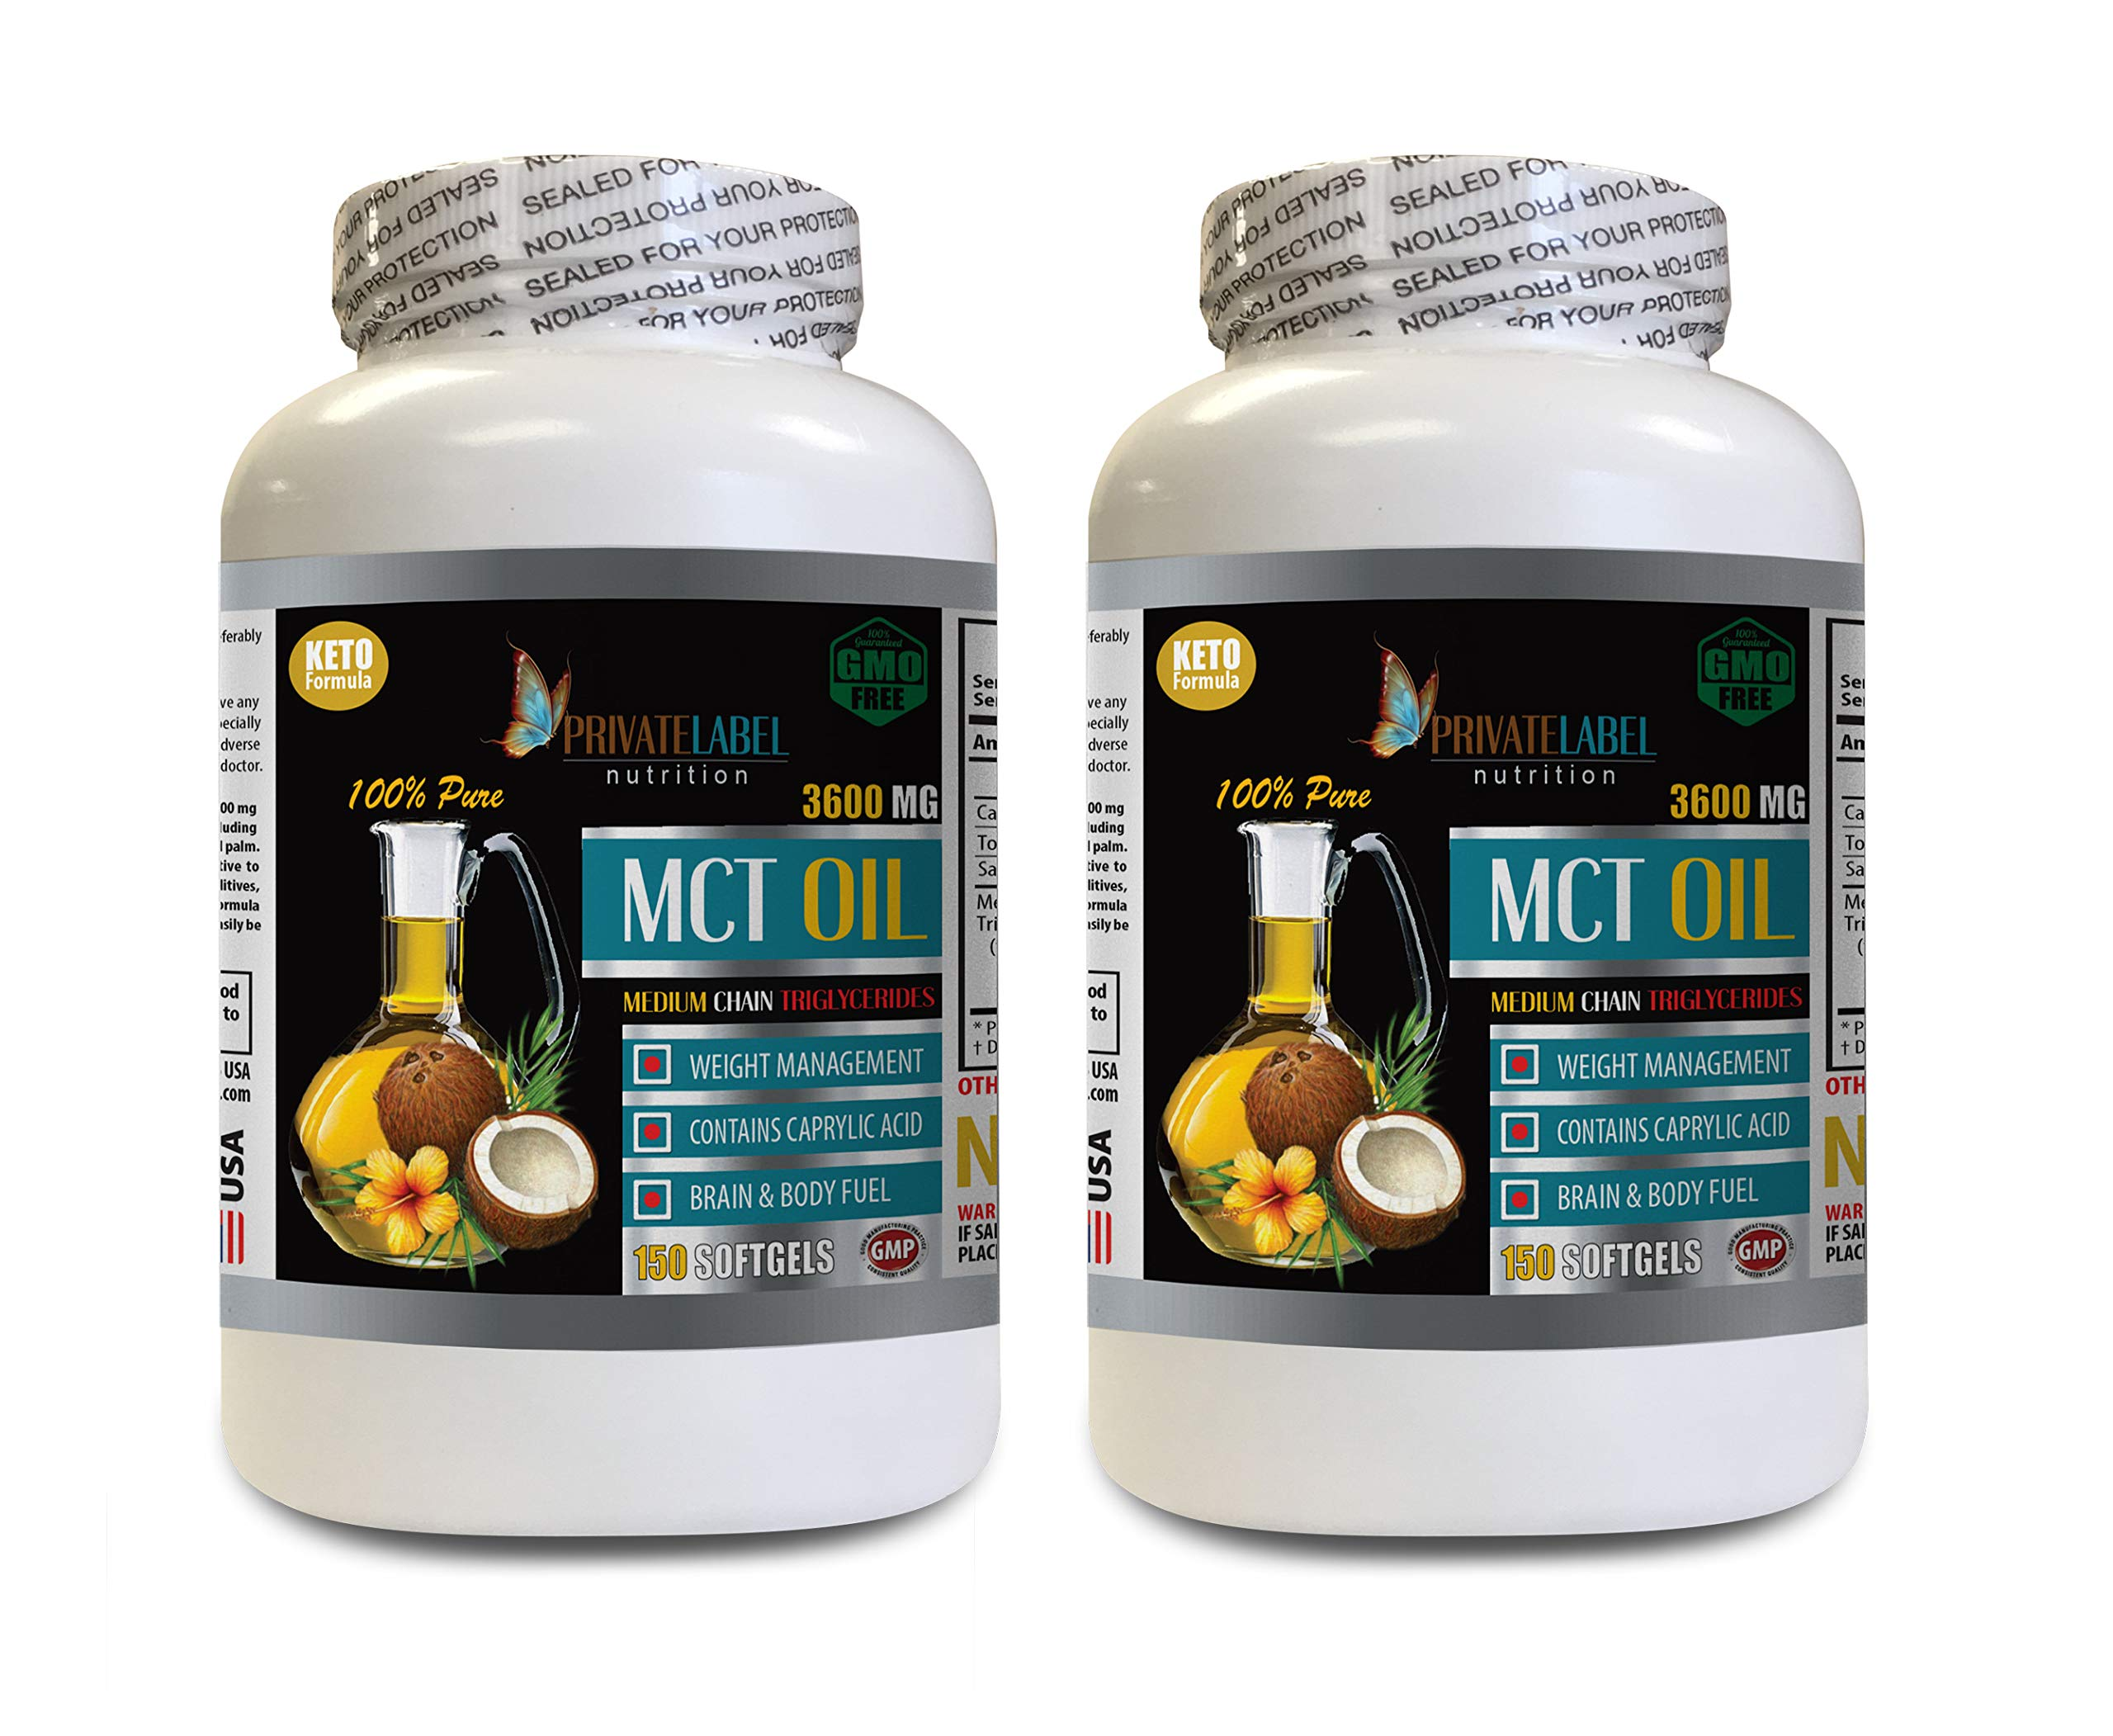 Appetite suppressant Energy Booster - MCT Oil 3600MG - Medium Chain TRIGLYCERIDES - mct Oil Supplement softgels - 2 Bottles 300 Softgels